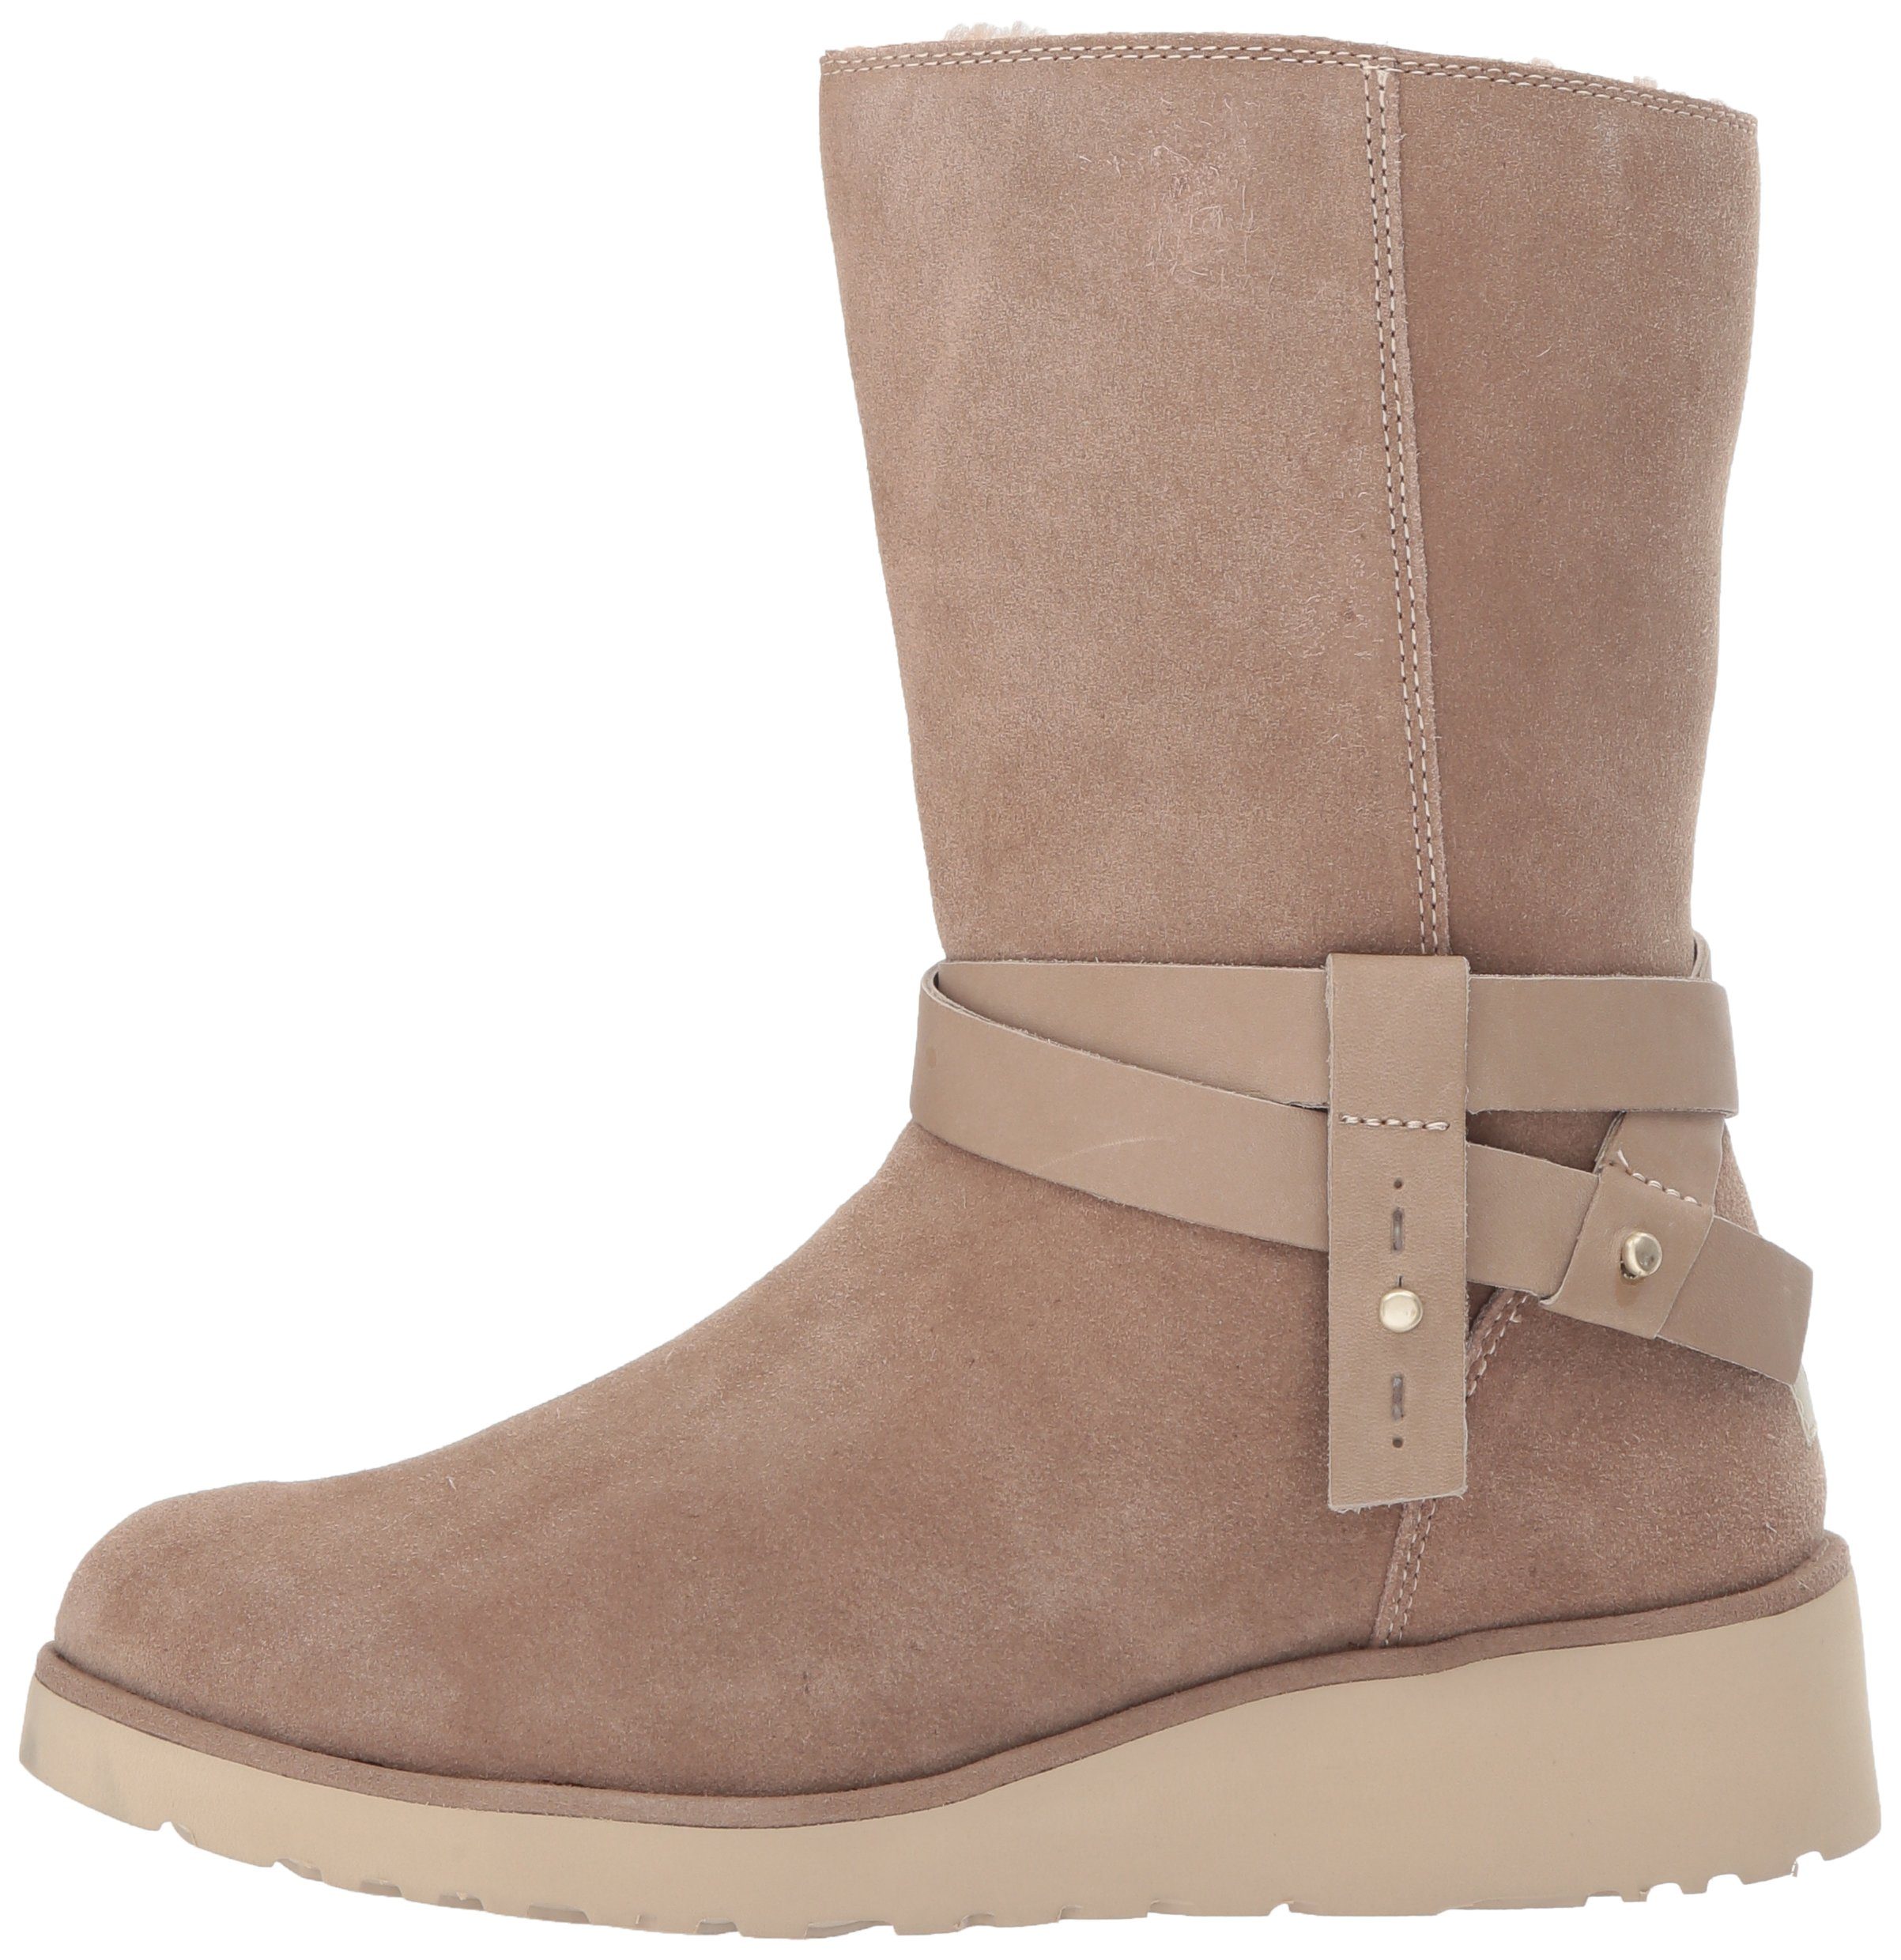 UGG Women's Aysel Winter Boot, Fawn, 7.5 M US by UGG (Image #5)